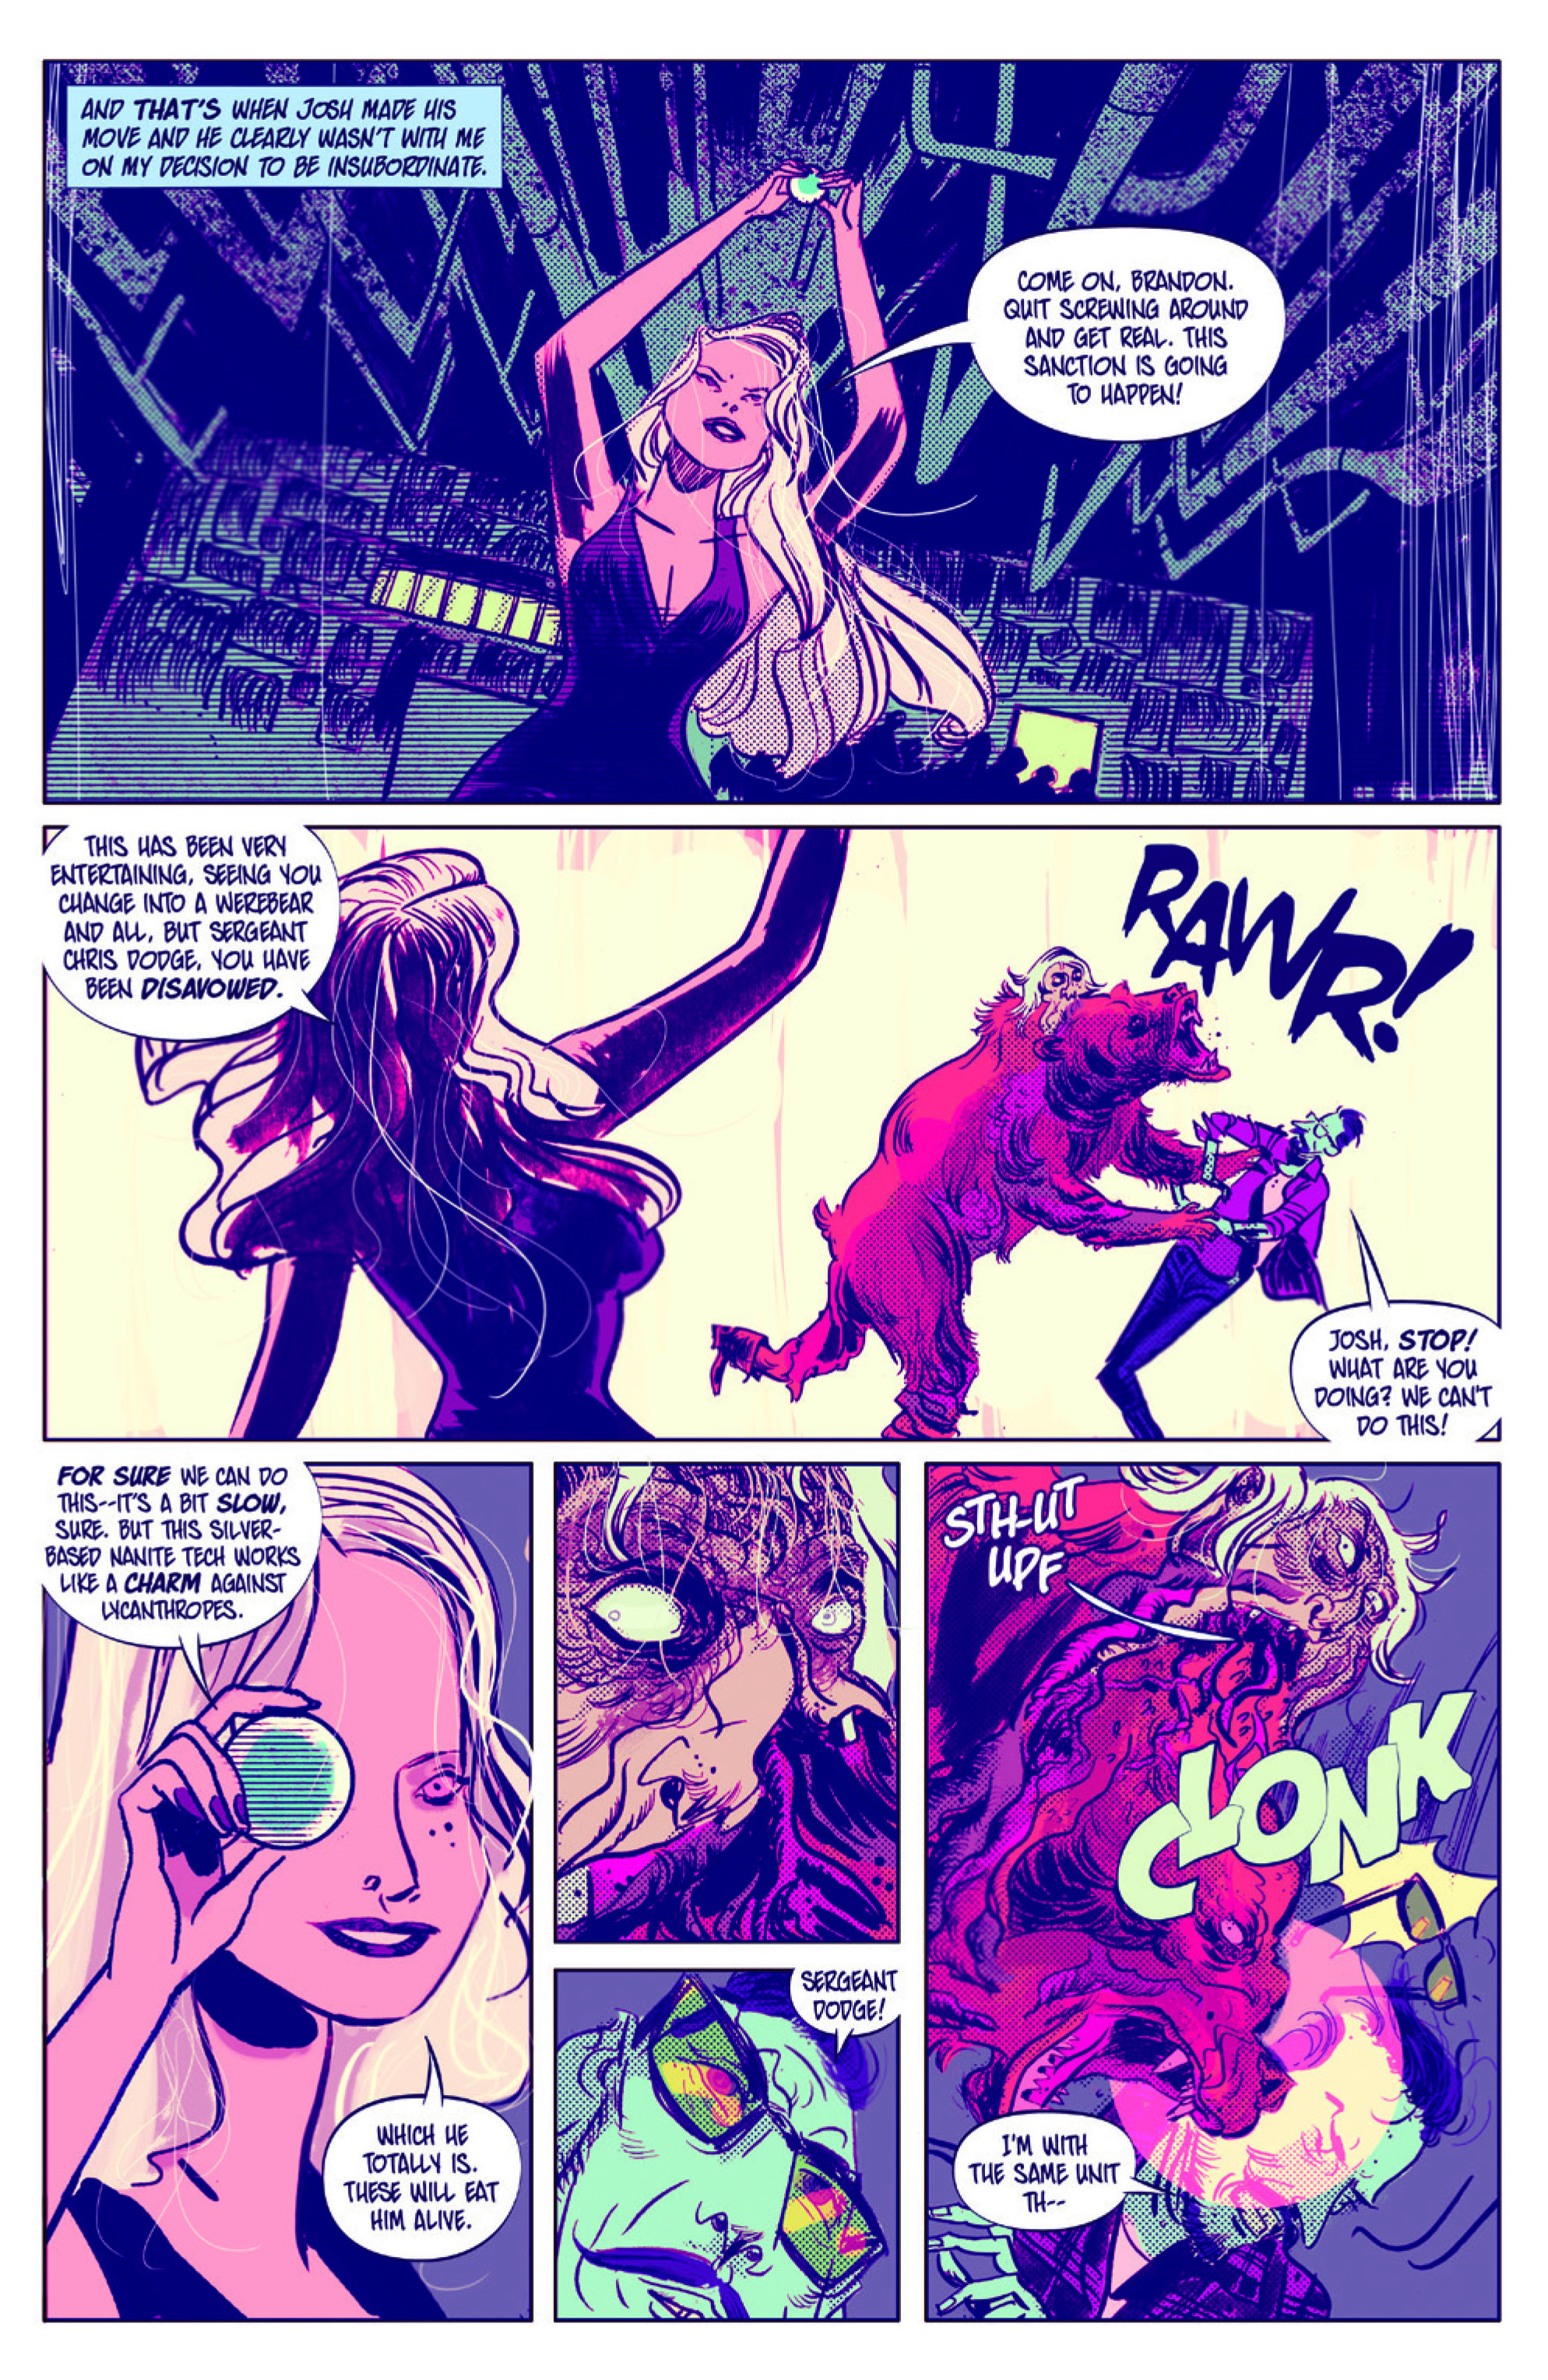 retcon01_Review_(1)_Page_09